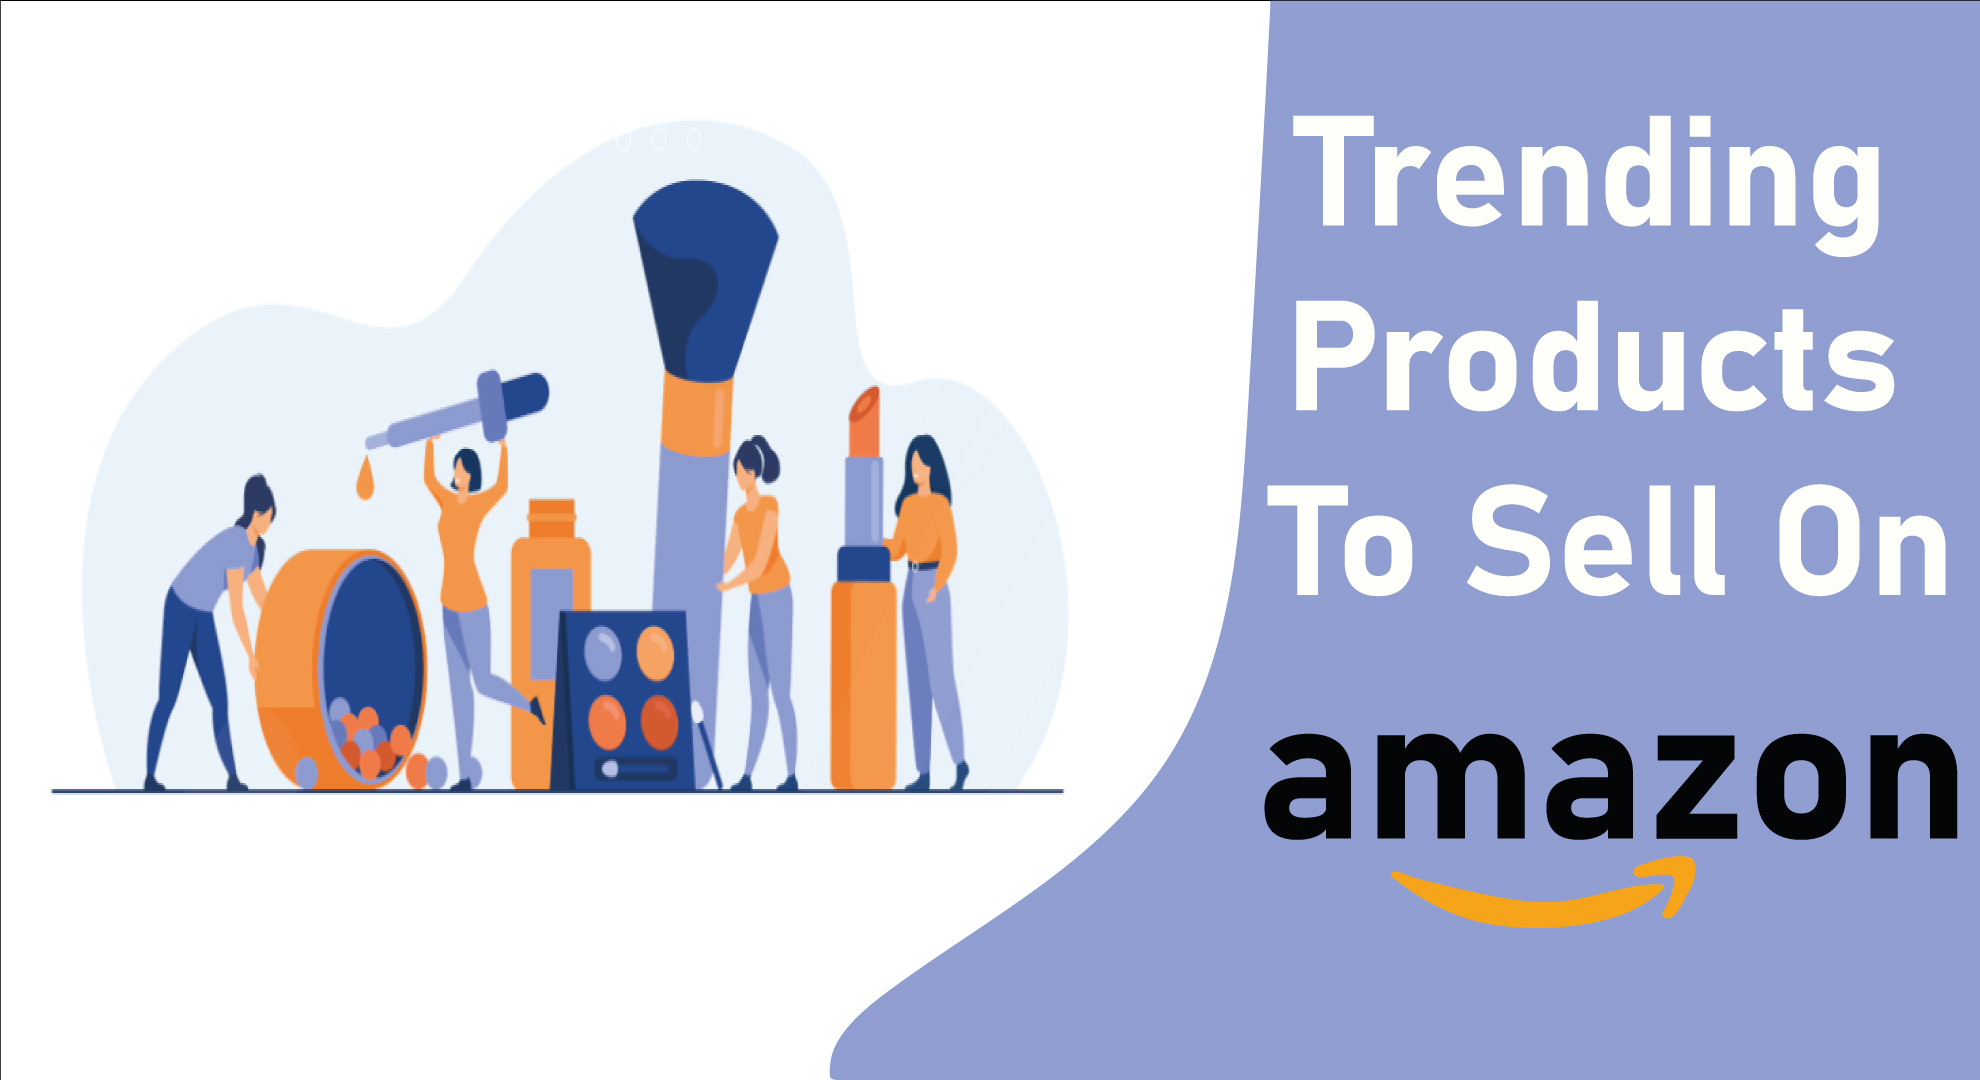 How-To-Find-Trending-Products-To-Sell-On-Amazon